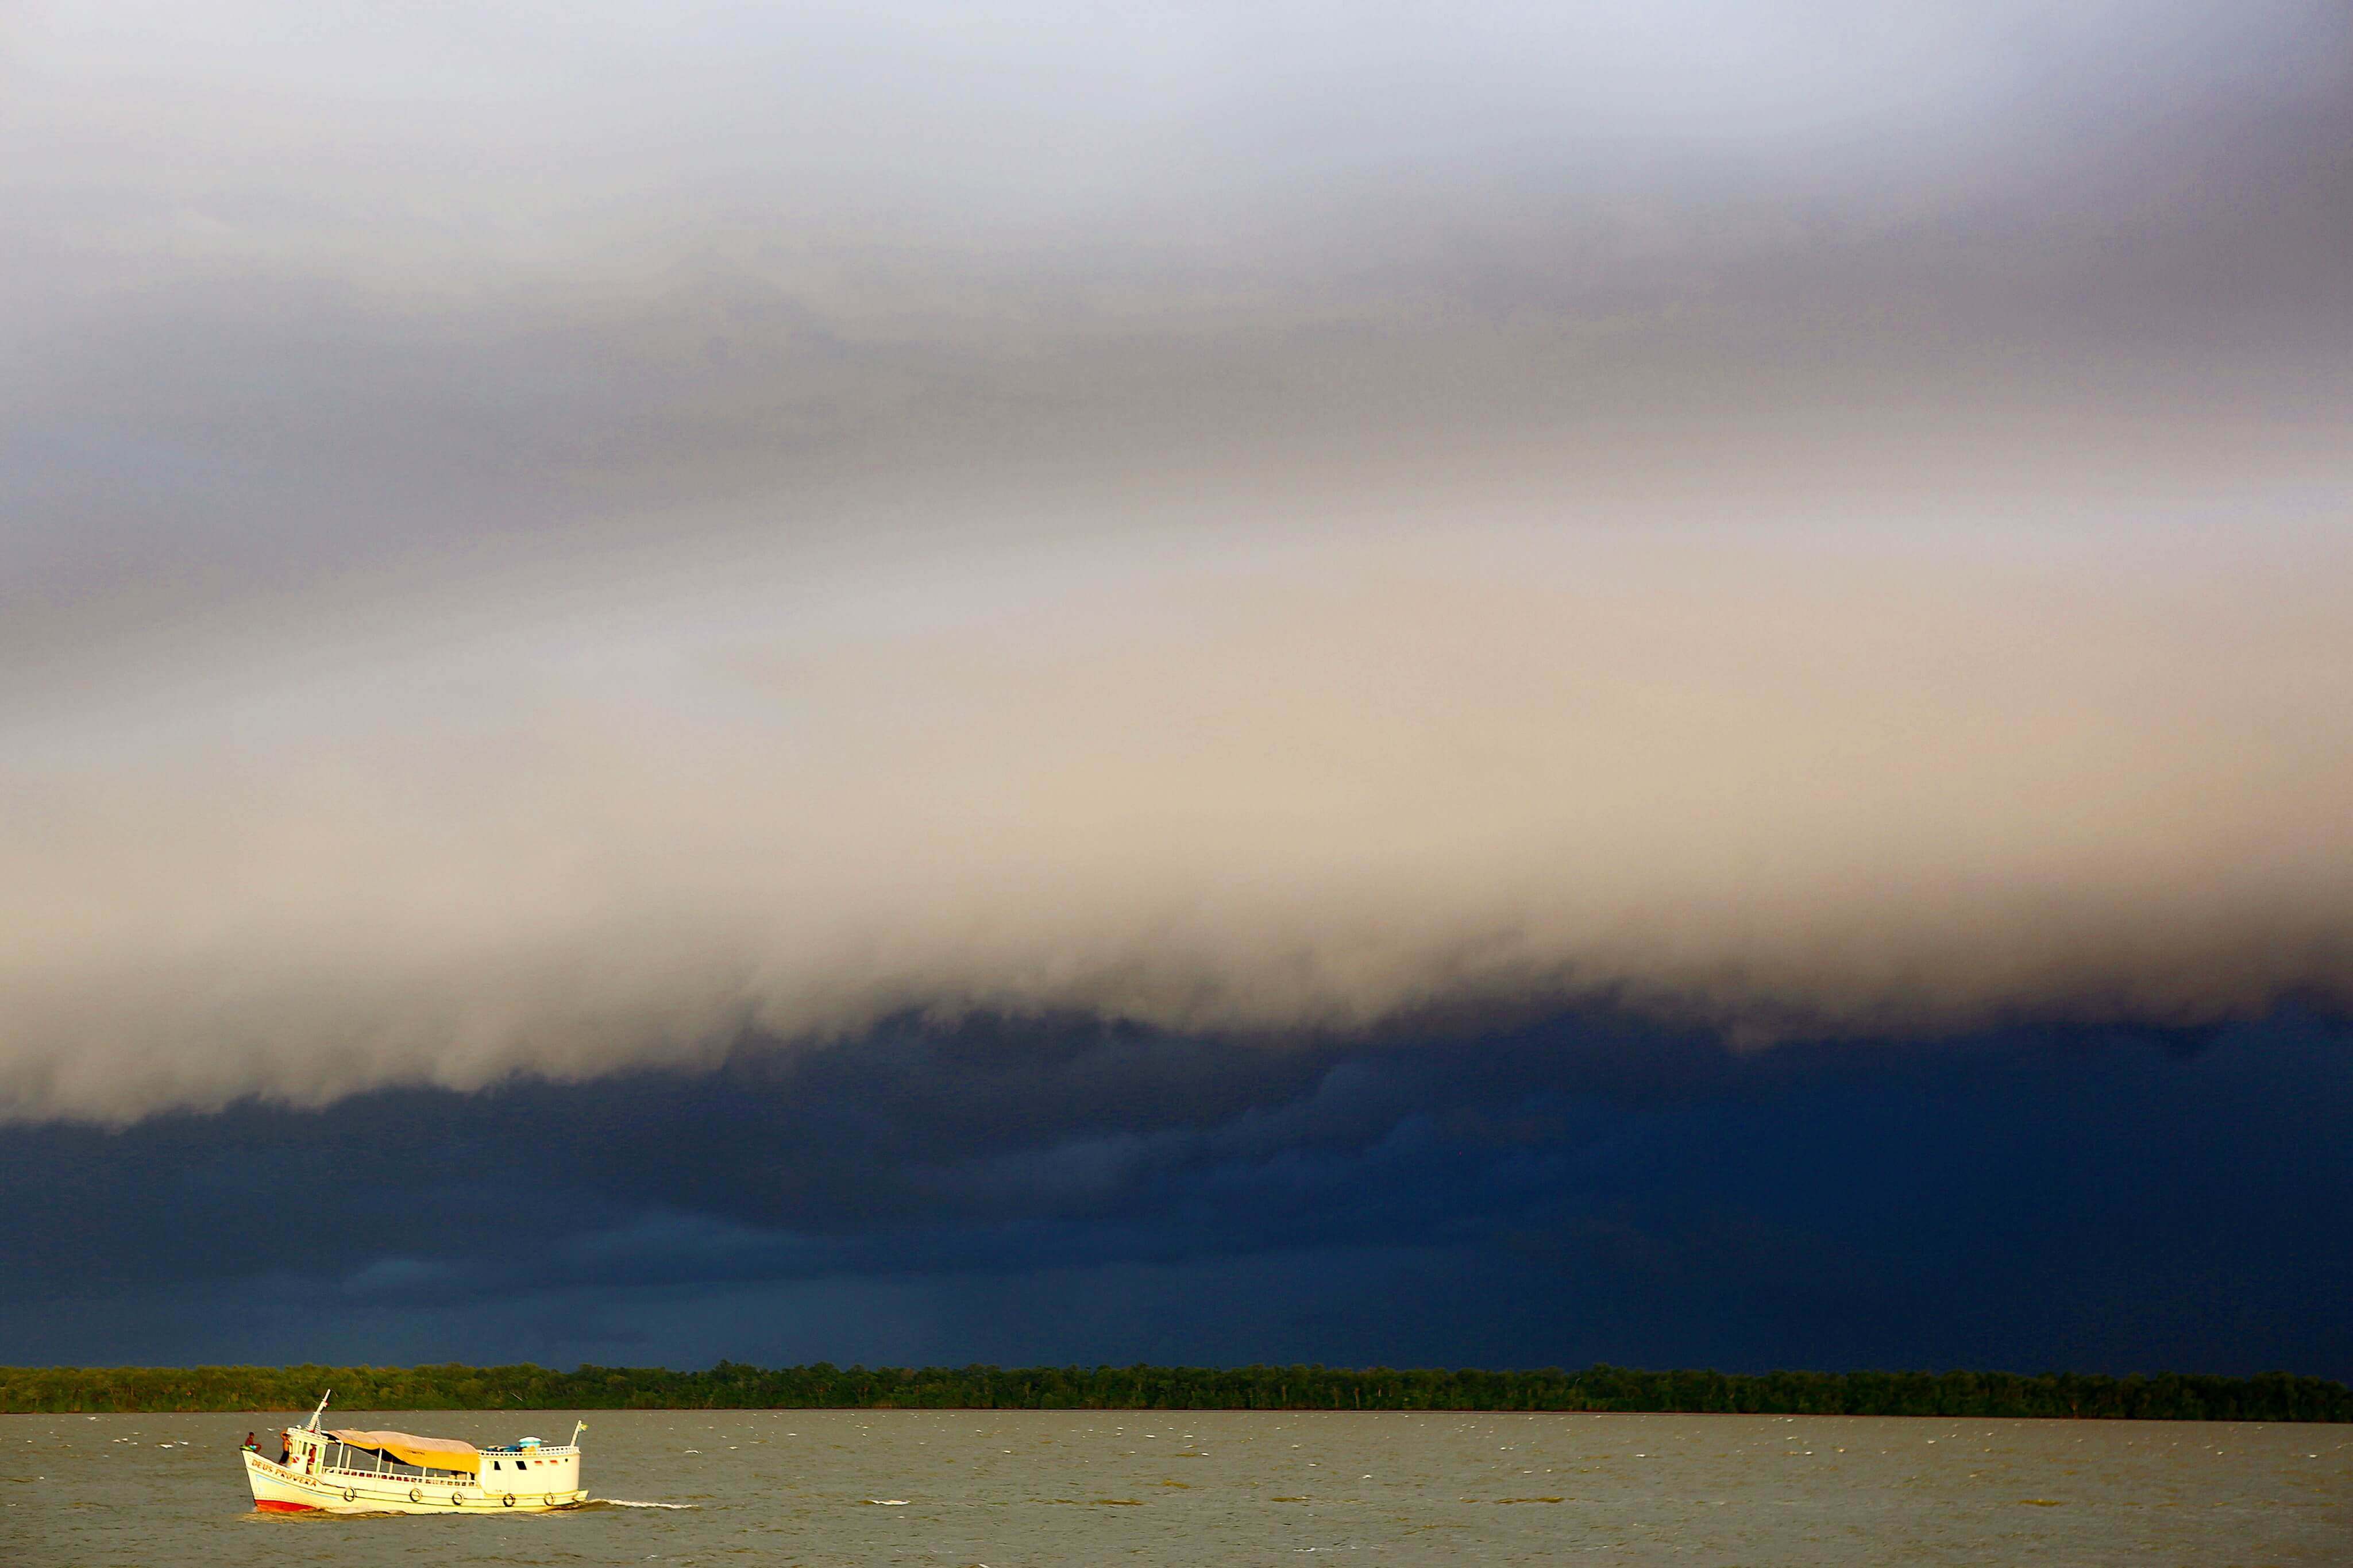 The daily storm clouds gather over the Amazon River near Belem.